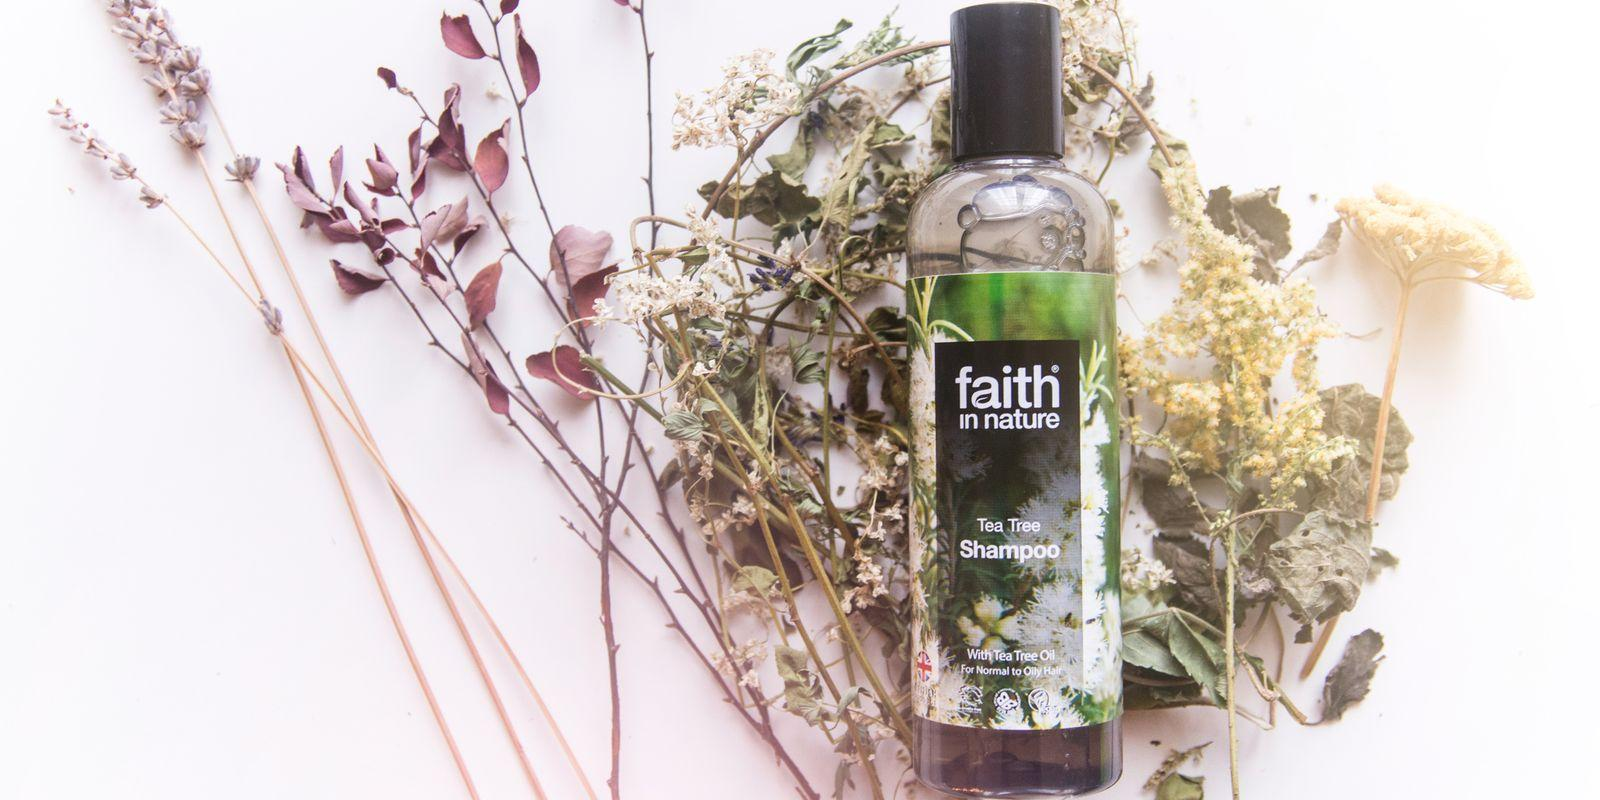 Recenze: Šampon Tea Tree od Faith in Nature